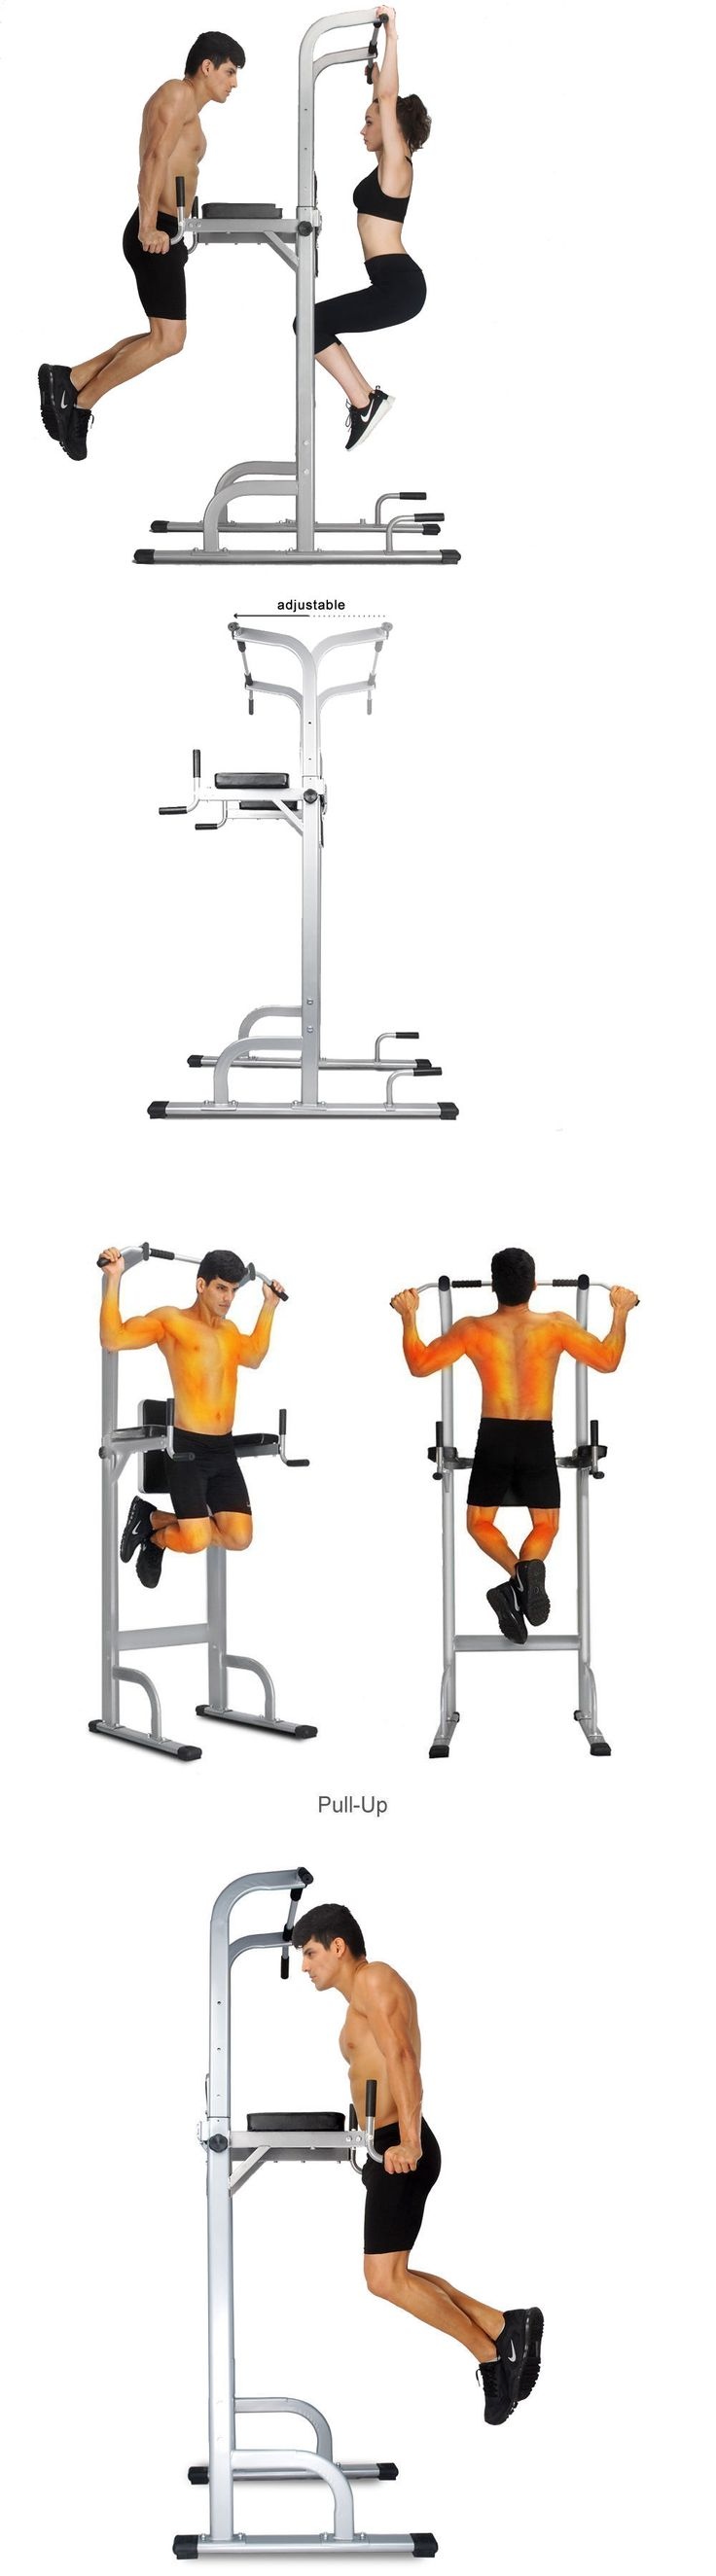 Pull Up Bars 179816: Power Tower Strength Training Fitness Equipment Pull Up Bar Standing Tower Gym -> BUY IT NOW ONLY: $109.8 on eBay!